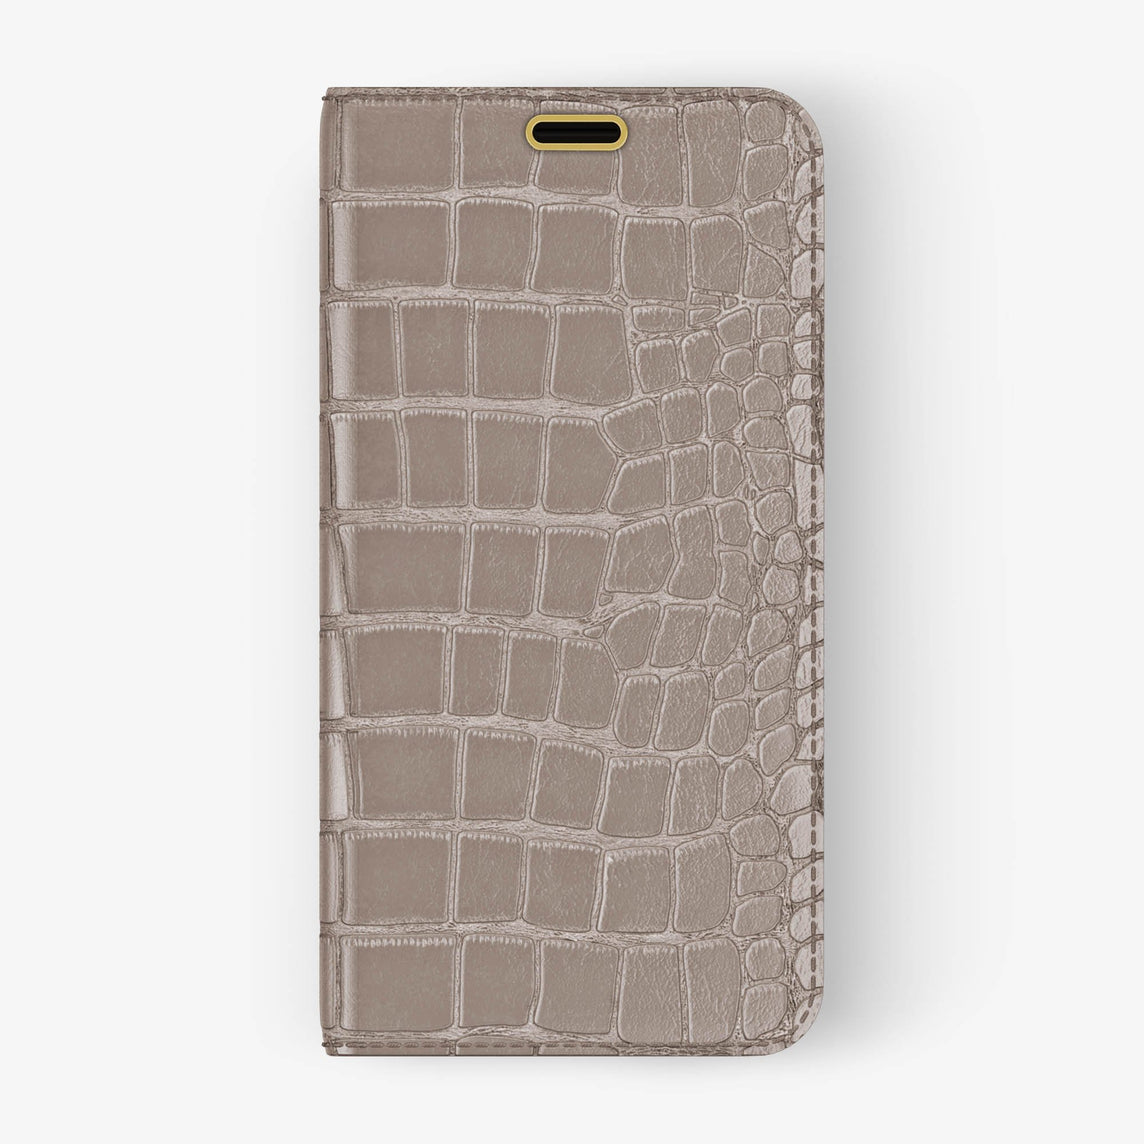 Alligator Folio Case iPhone X/Xs | Latte - Yellow Gold without-personalization